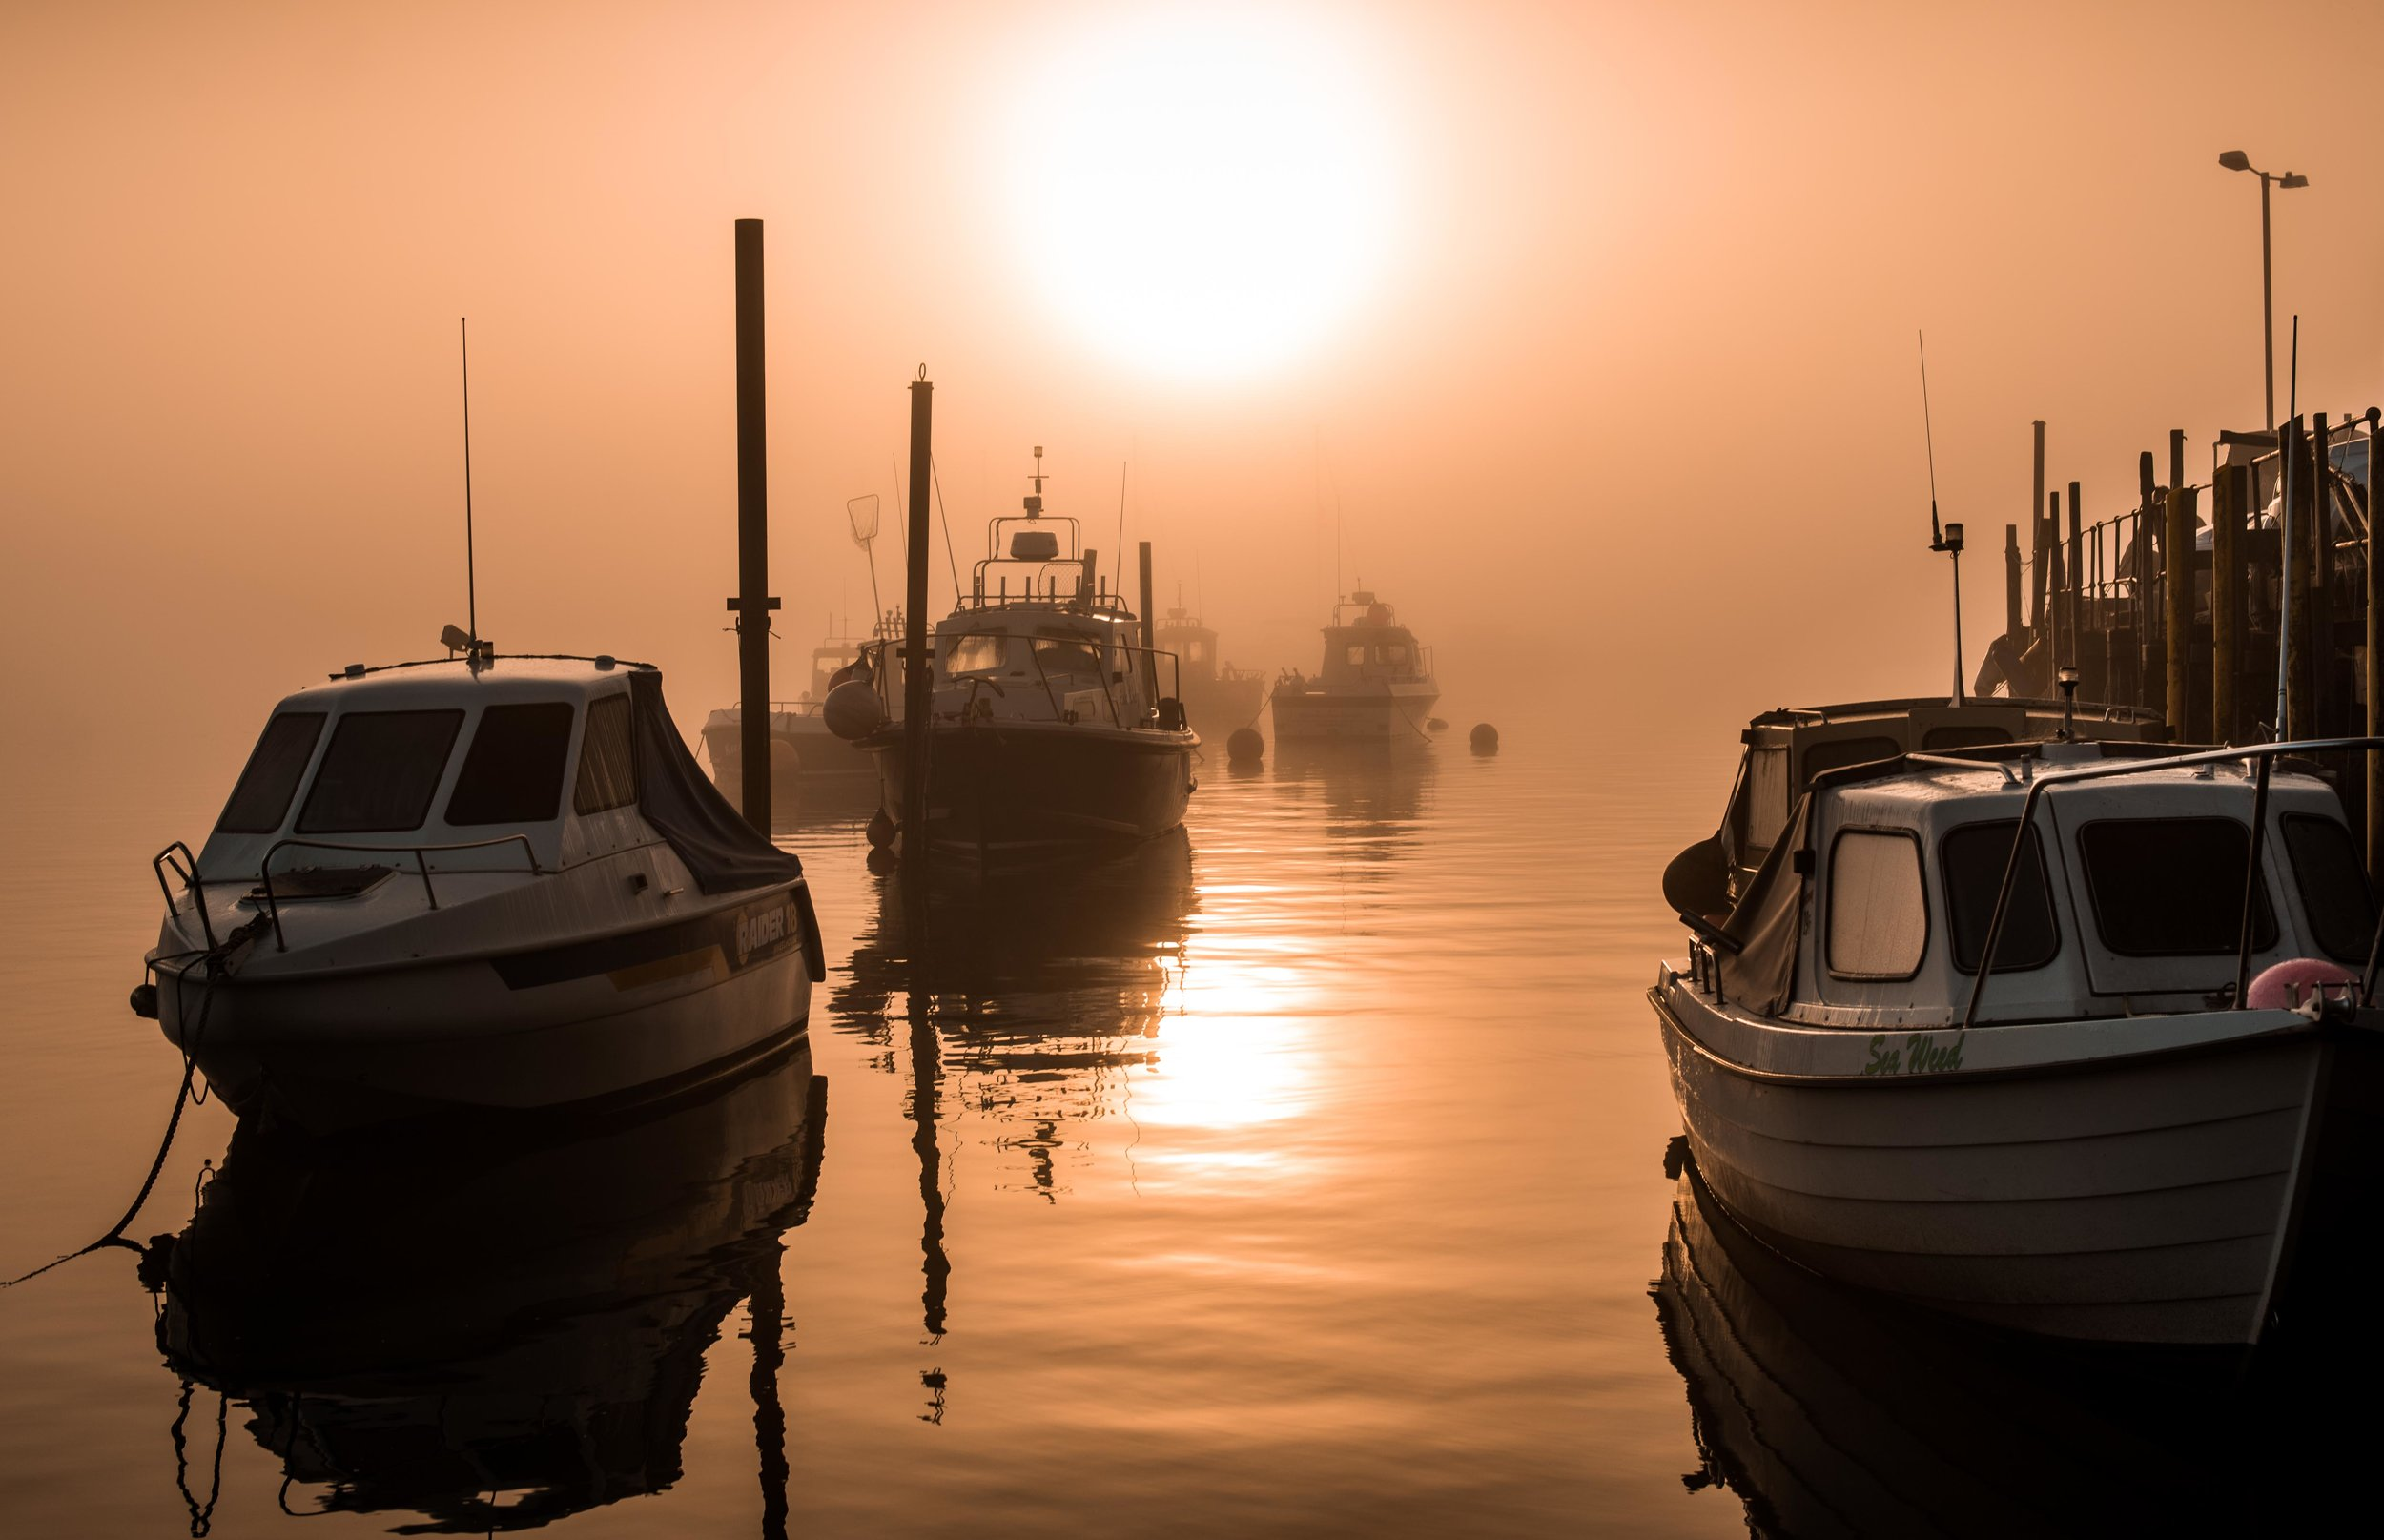 Bembridge Harbour_Misty_Sunrise_DSC_1630.jpg